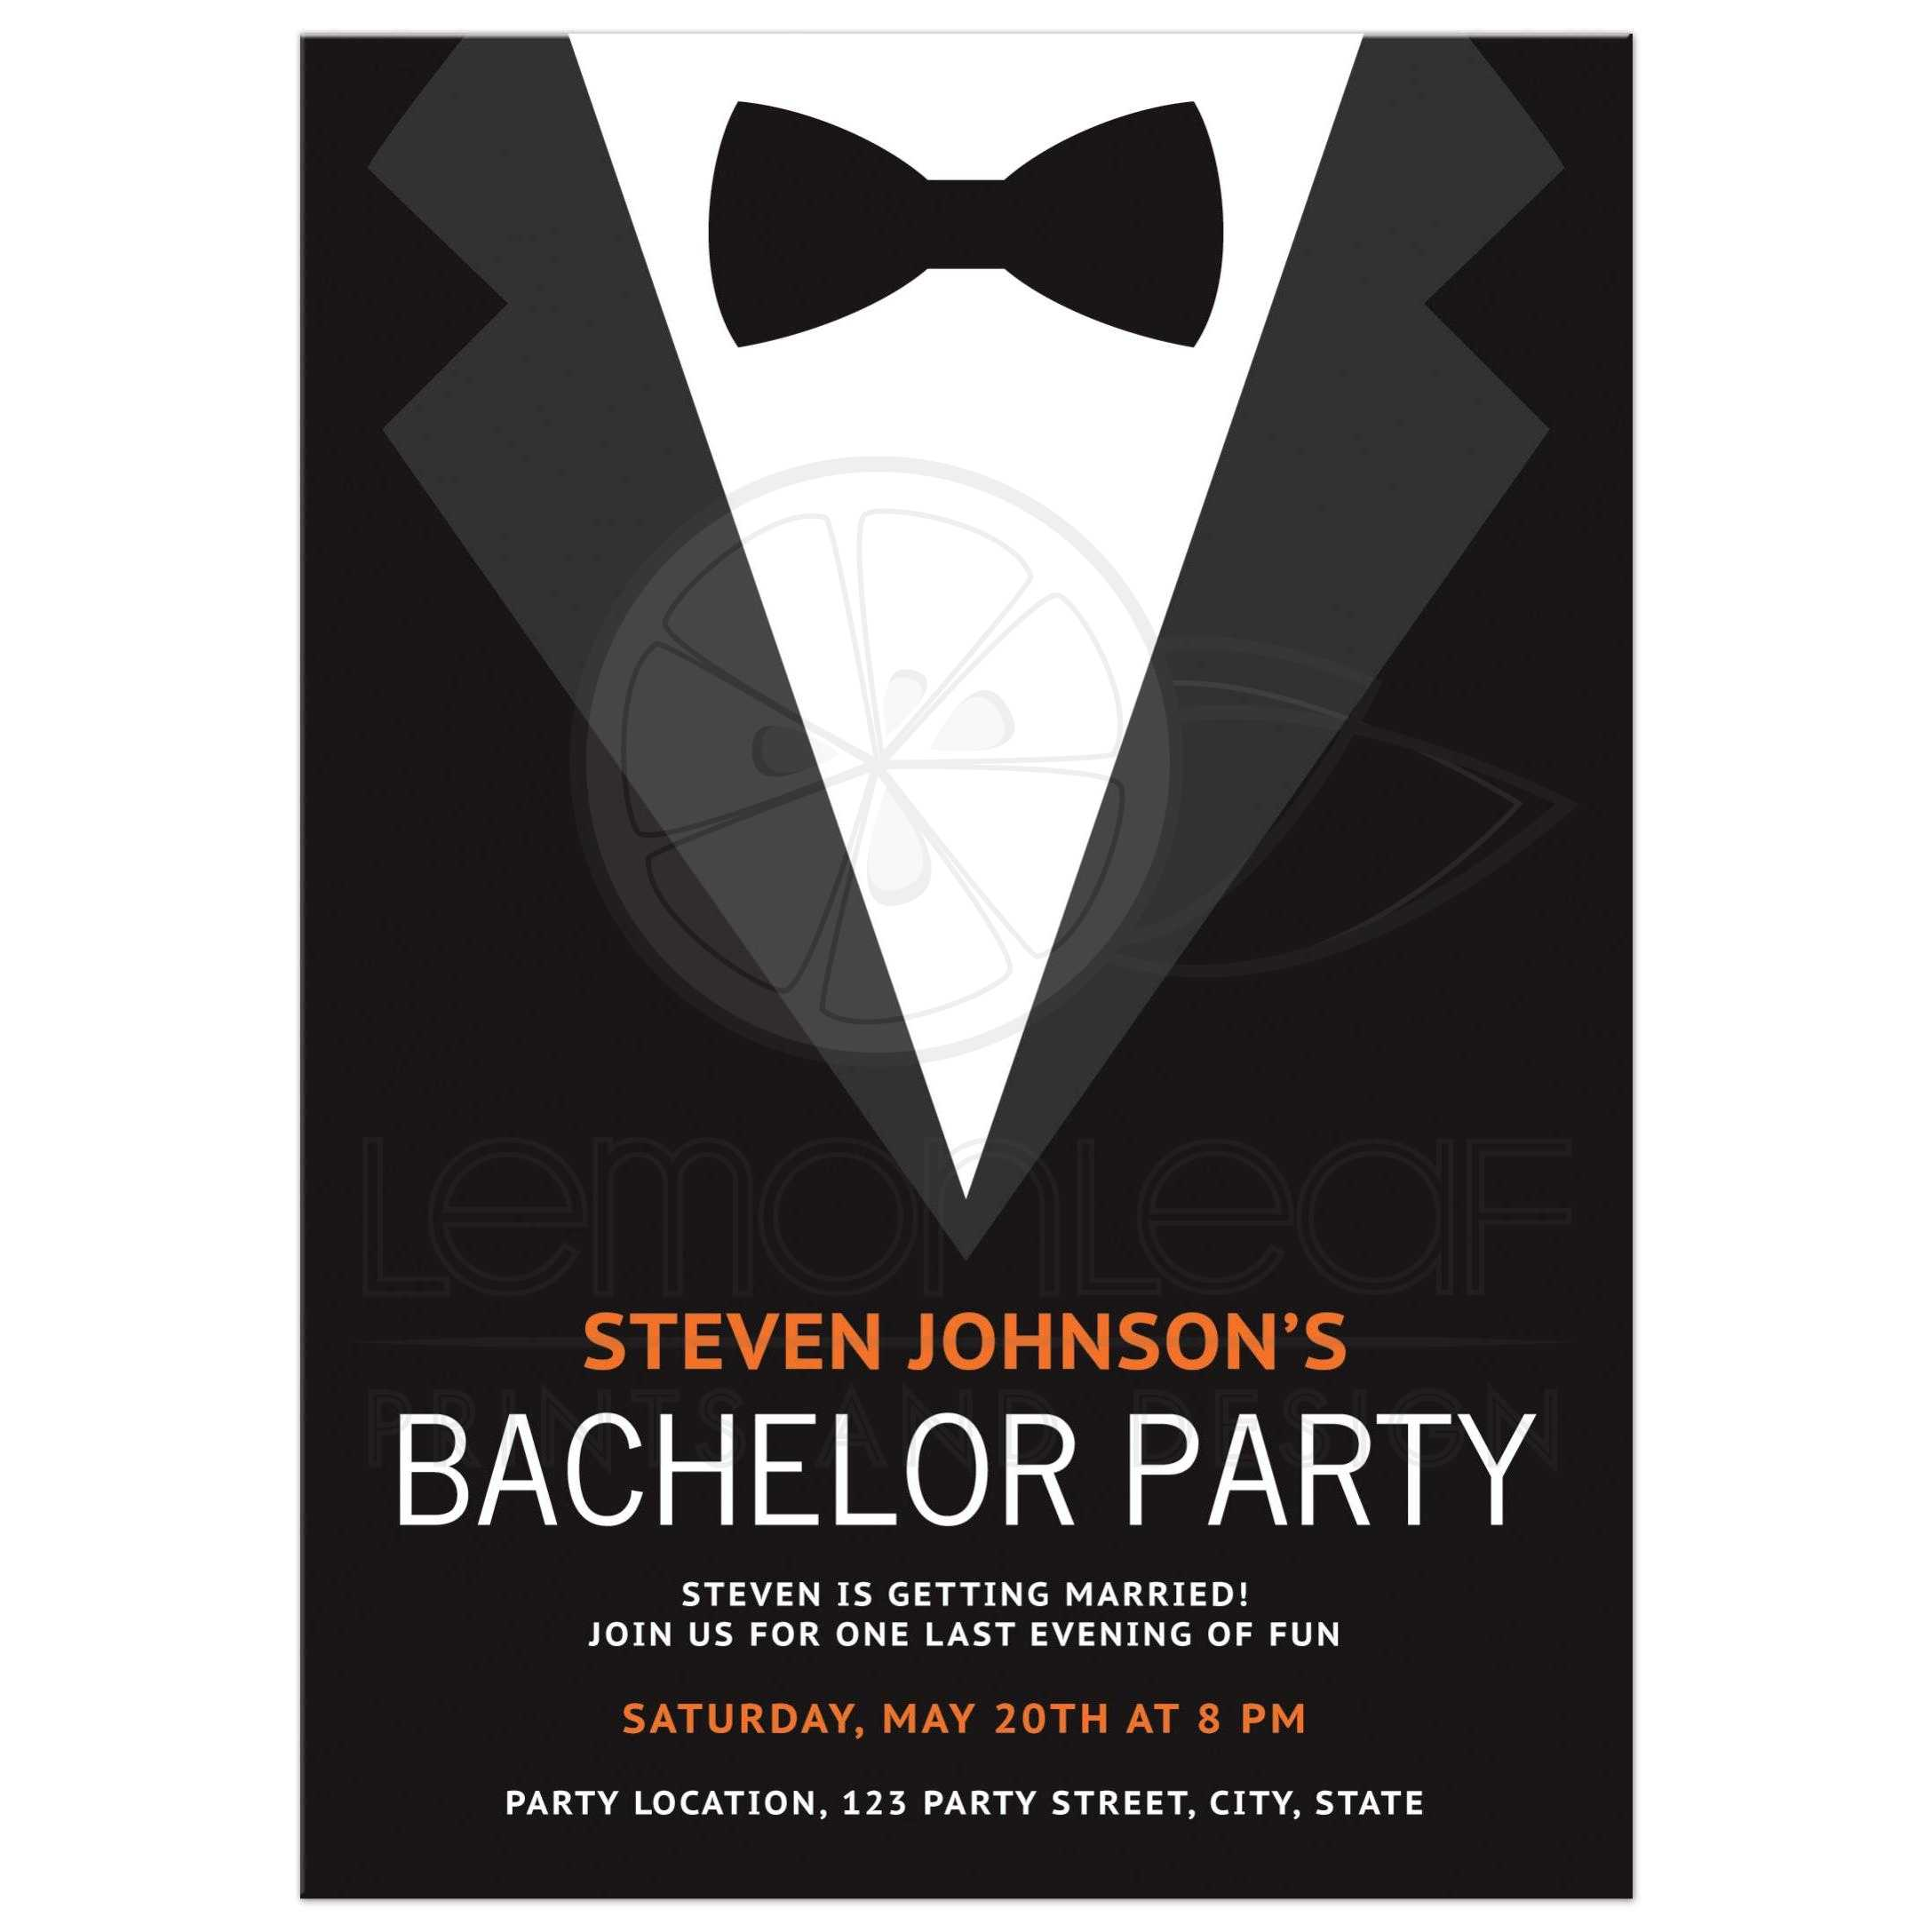 Bachelor party invitation with bow tie Bold and modern design in